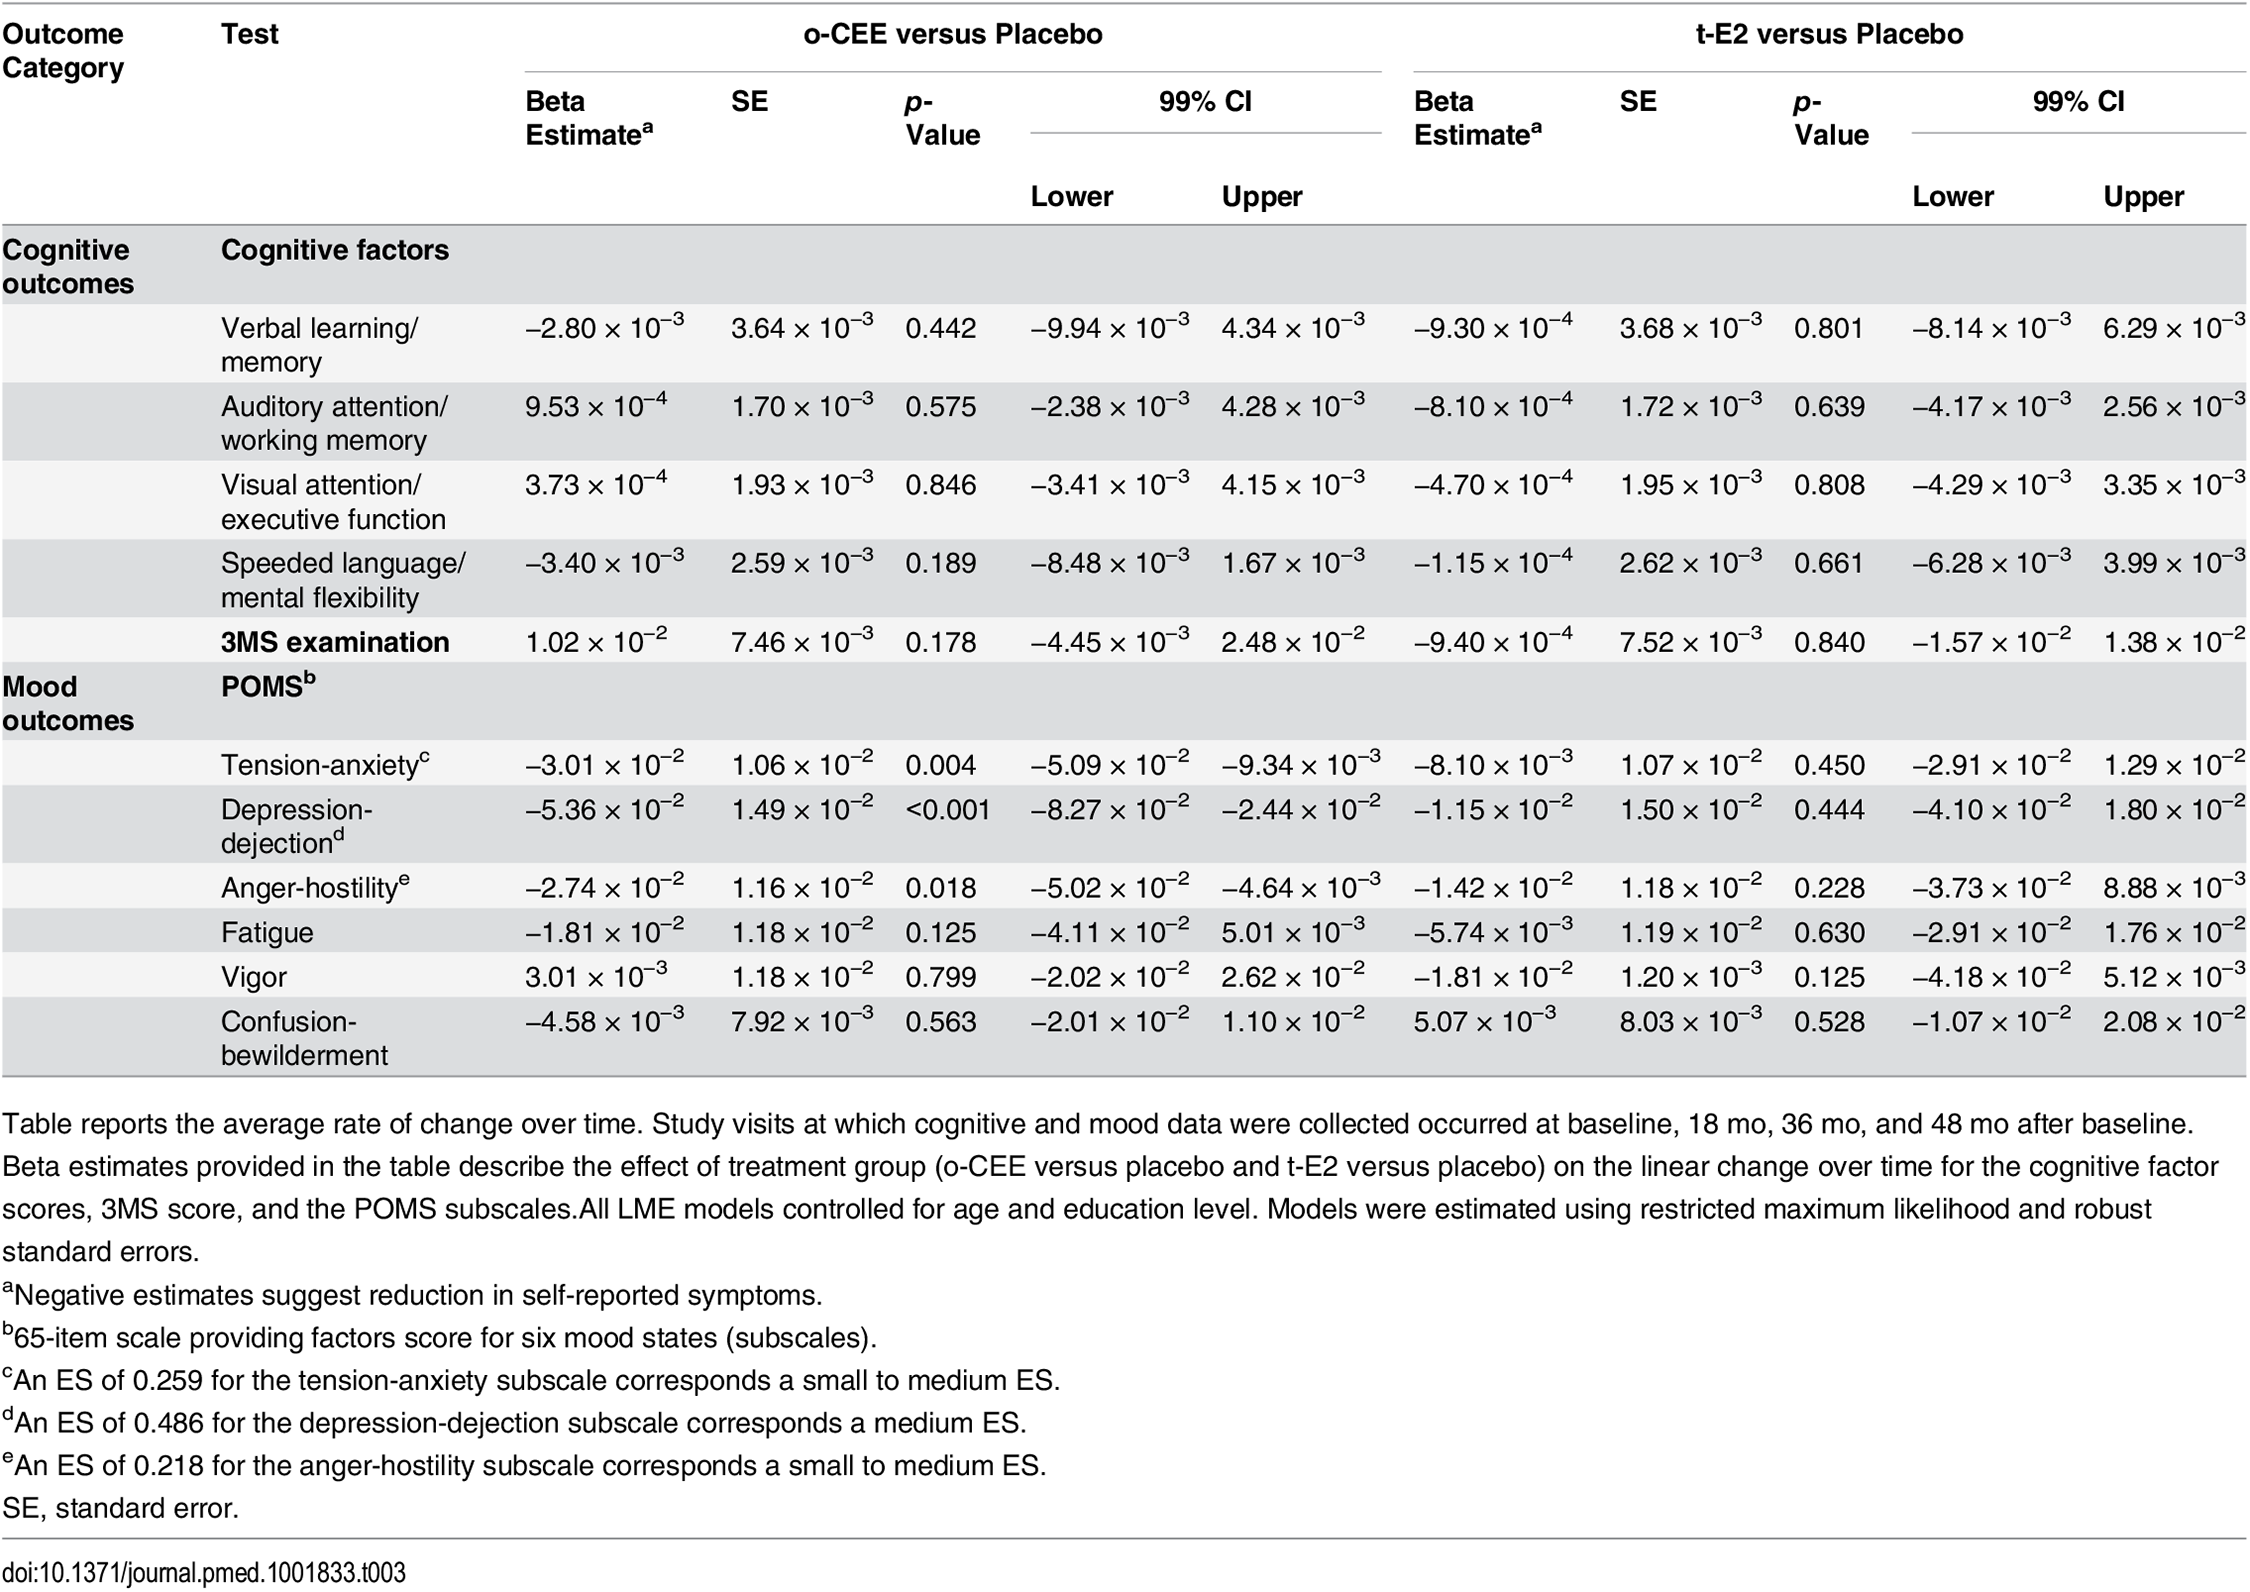 Treatment efficacy: beta estimates and confidence intervals for cognitive factor scores and affective scores across treatment duration.